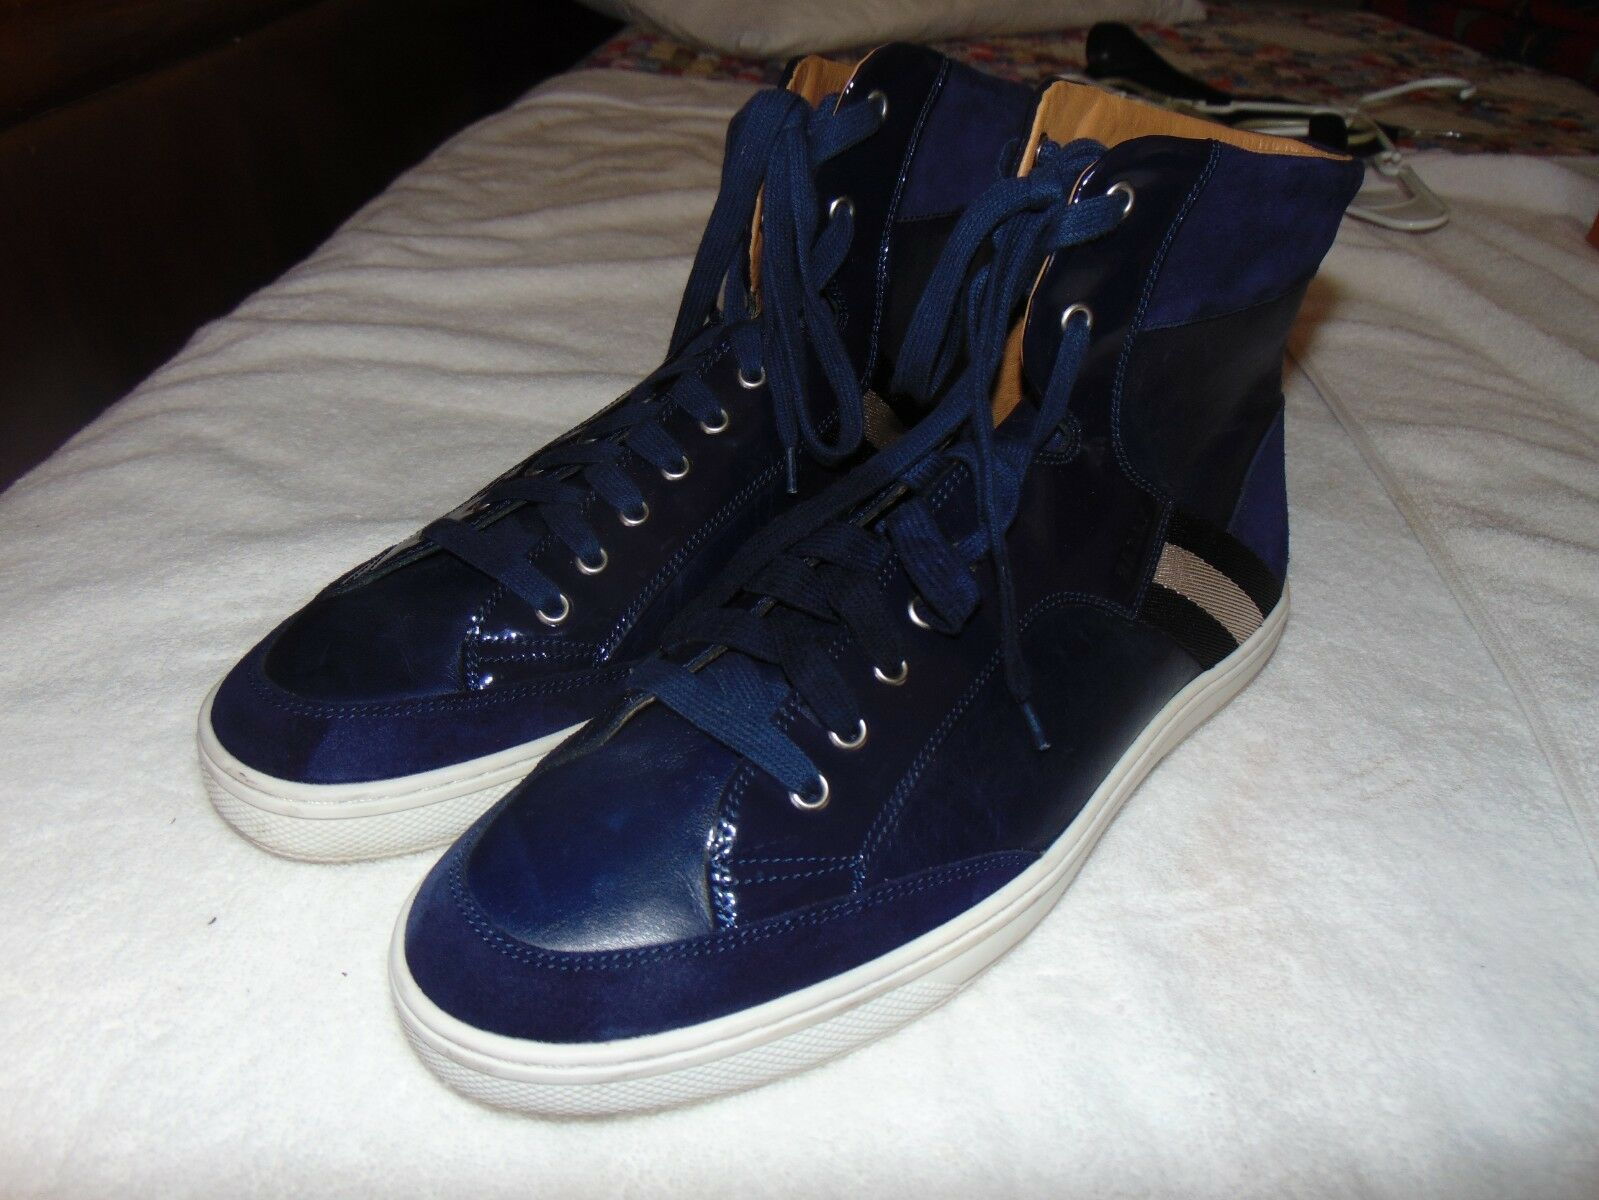 Bally Oldani   146  blueE Mixed-Leather High-Top Sneaker 11.5  D SOLD OUT  599 T